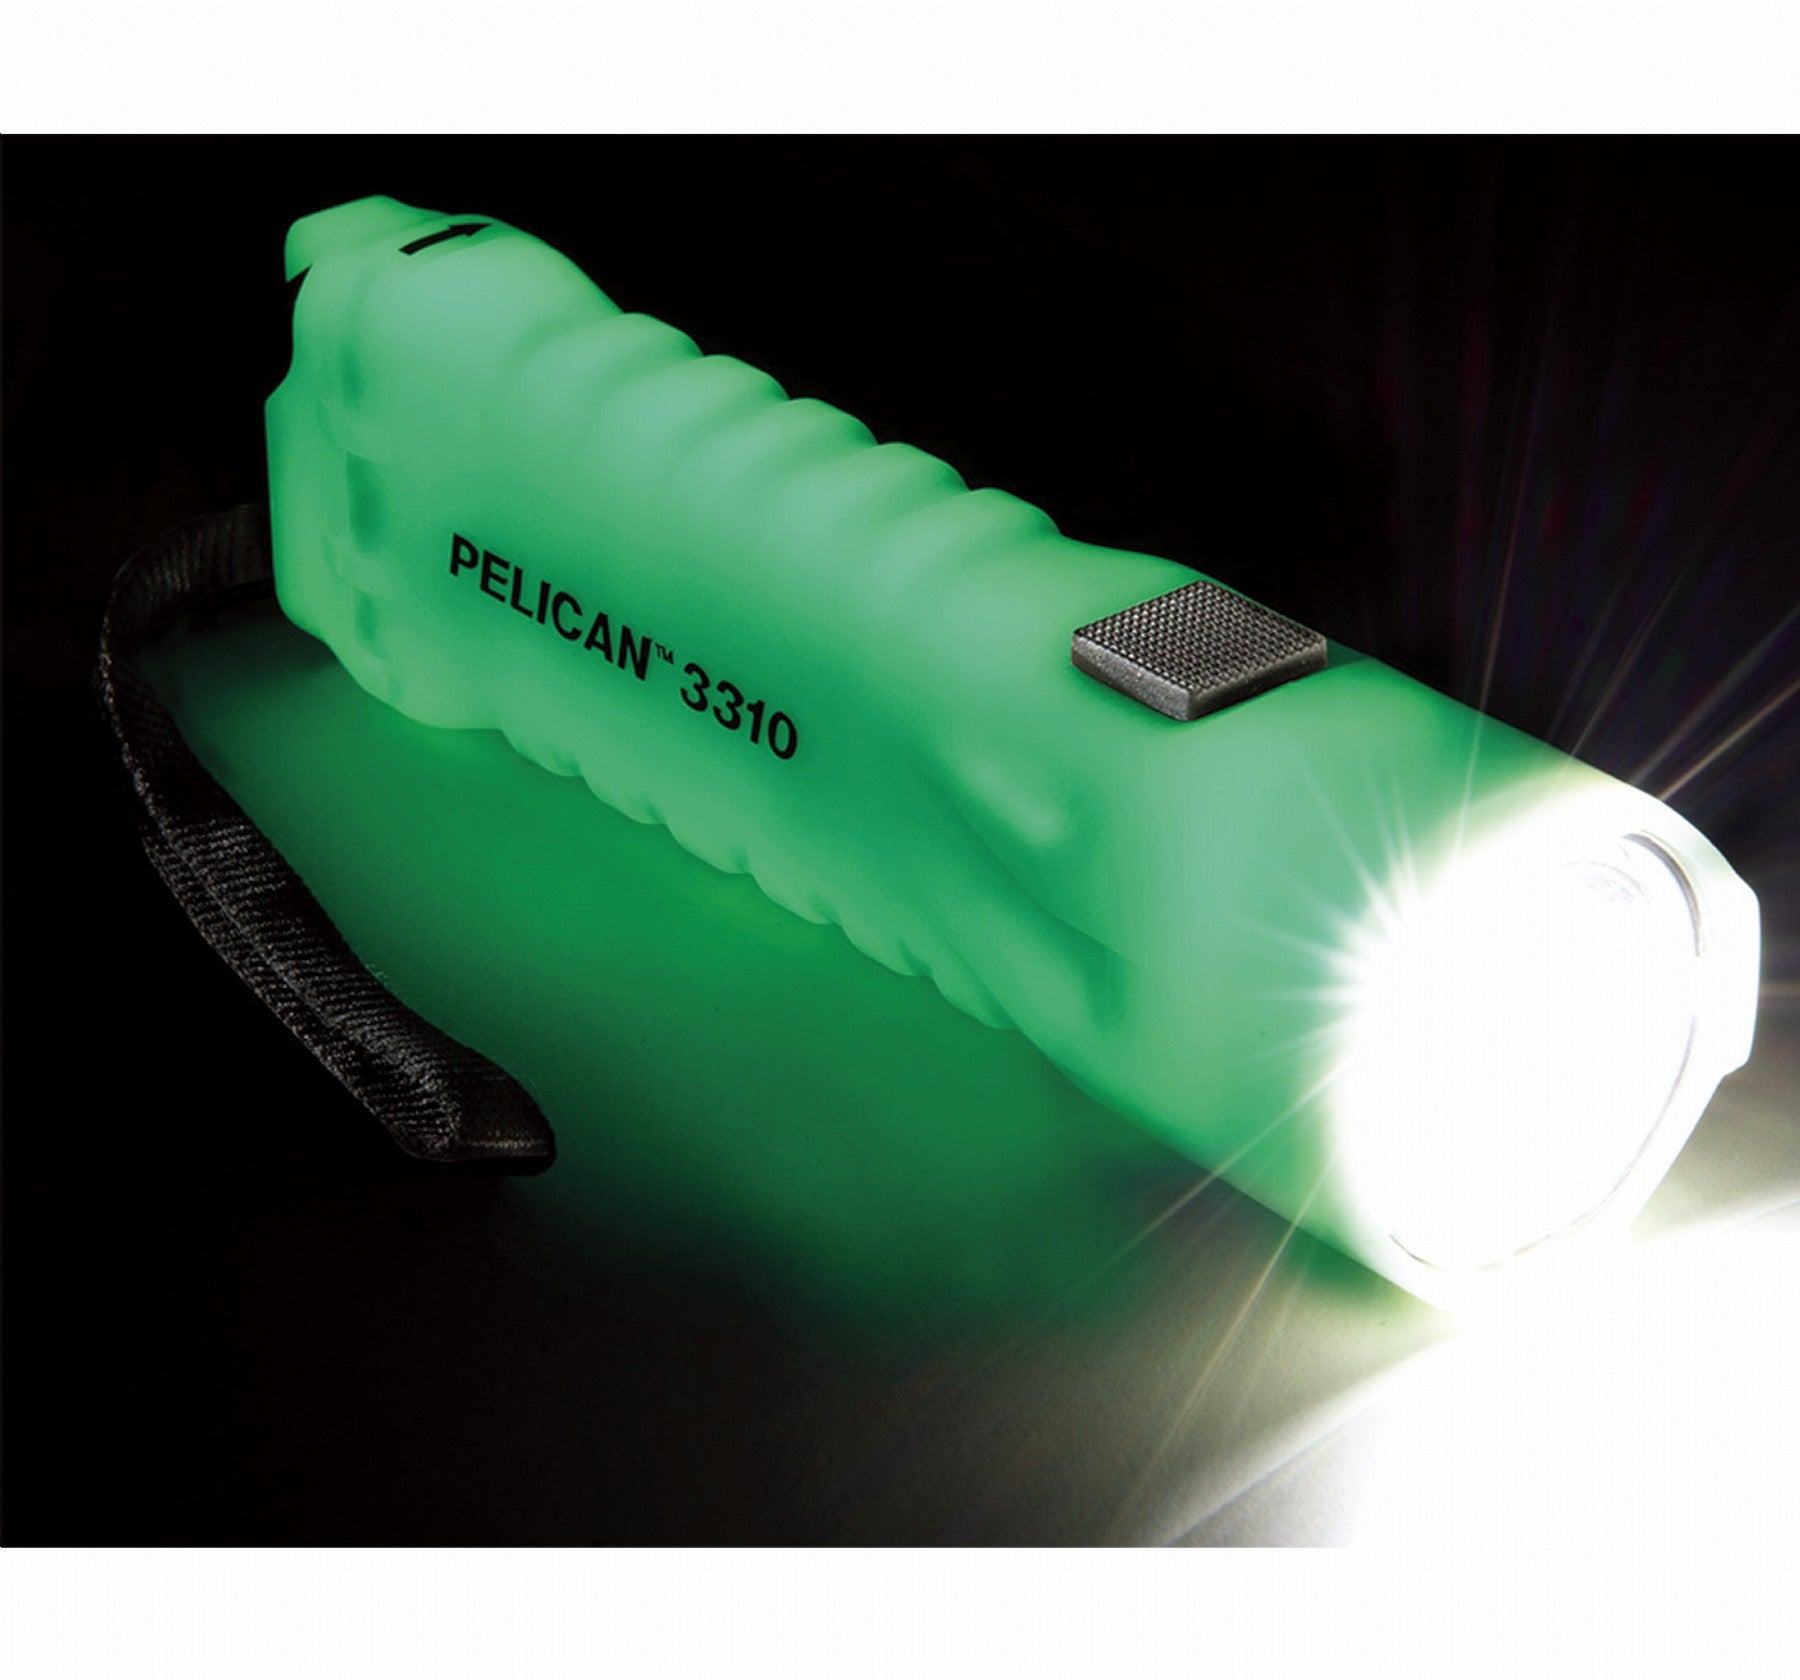 Pelican 3310 PL LED Photo-luminescent Flashlight